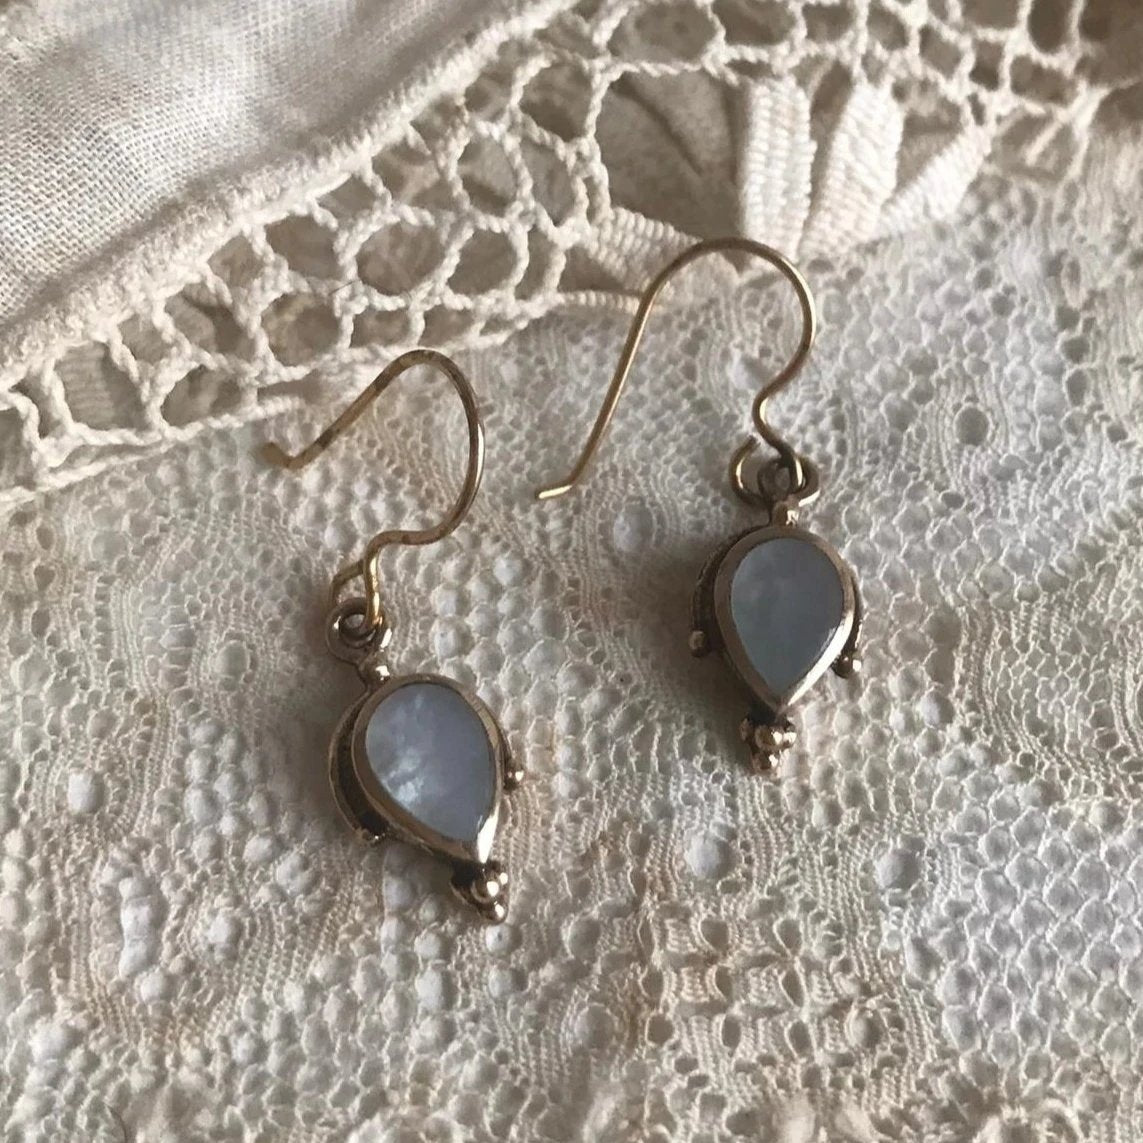 ina earrings with mother of pearl